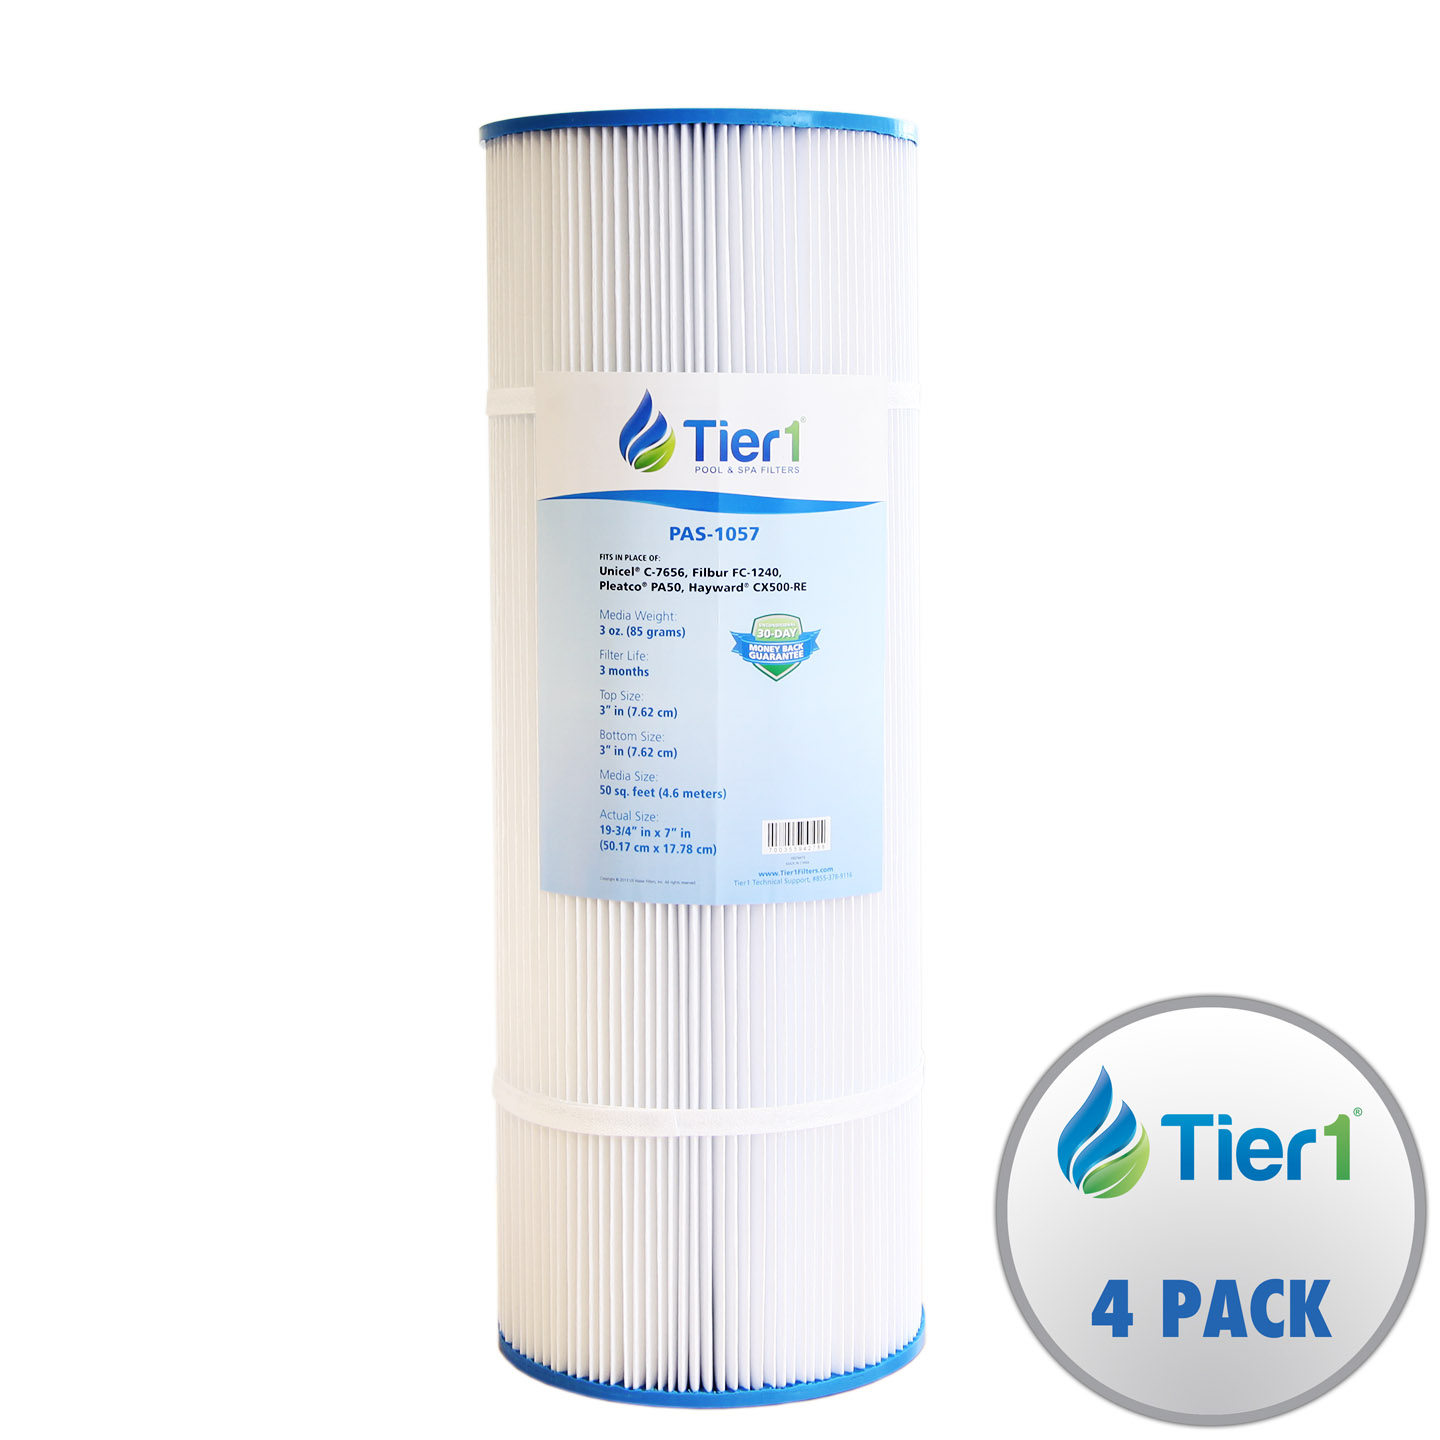 Tier1 Hayward Star Clear C500, Filbur FC-1240, Pleatco PA50, Unicel C-7656 Comparable Replacement FIlter Cartridge 4-PACK